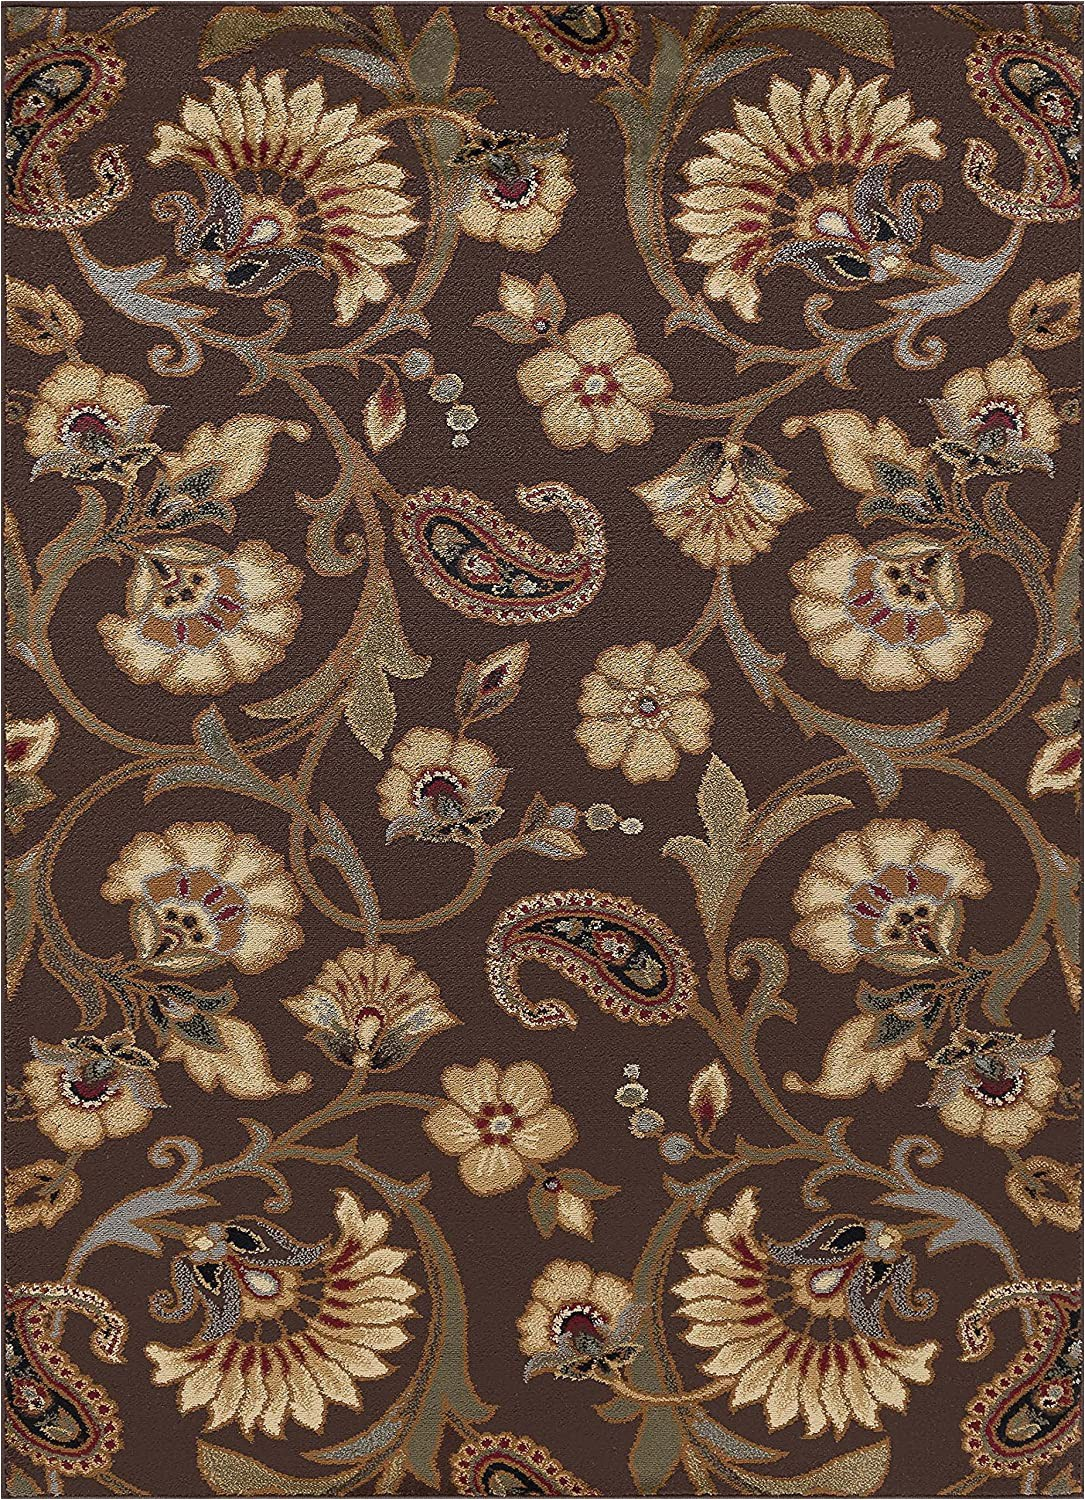 Mainstays Titan area Rug Black Universal Rugs Brown 5×7 area Rug 5 Feet by 7 Feet